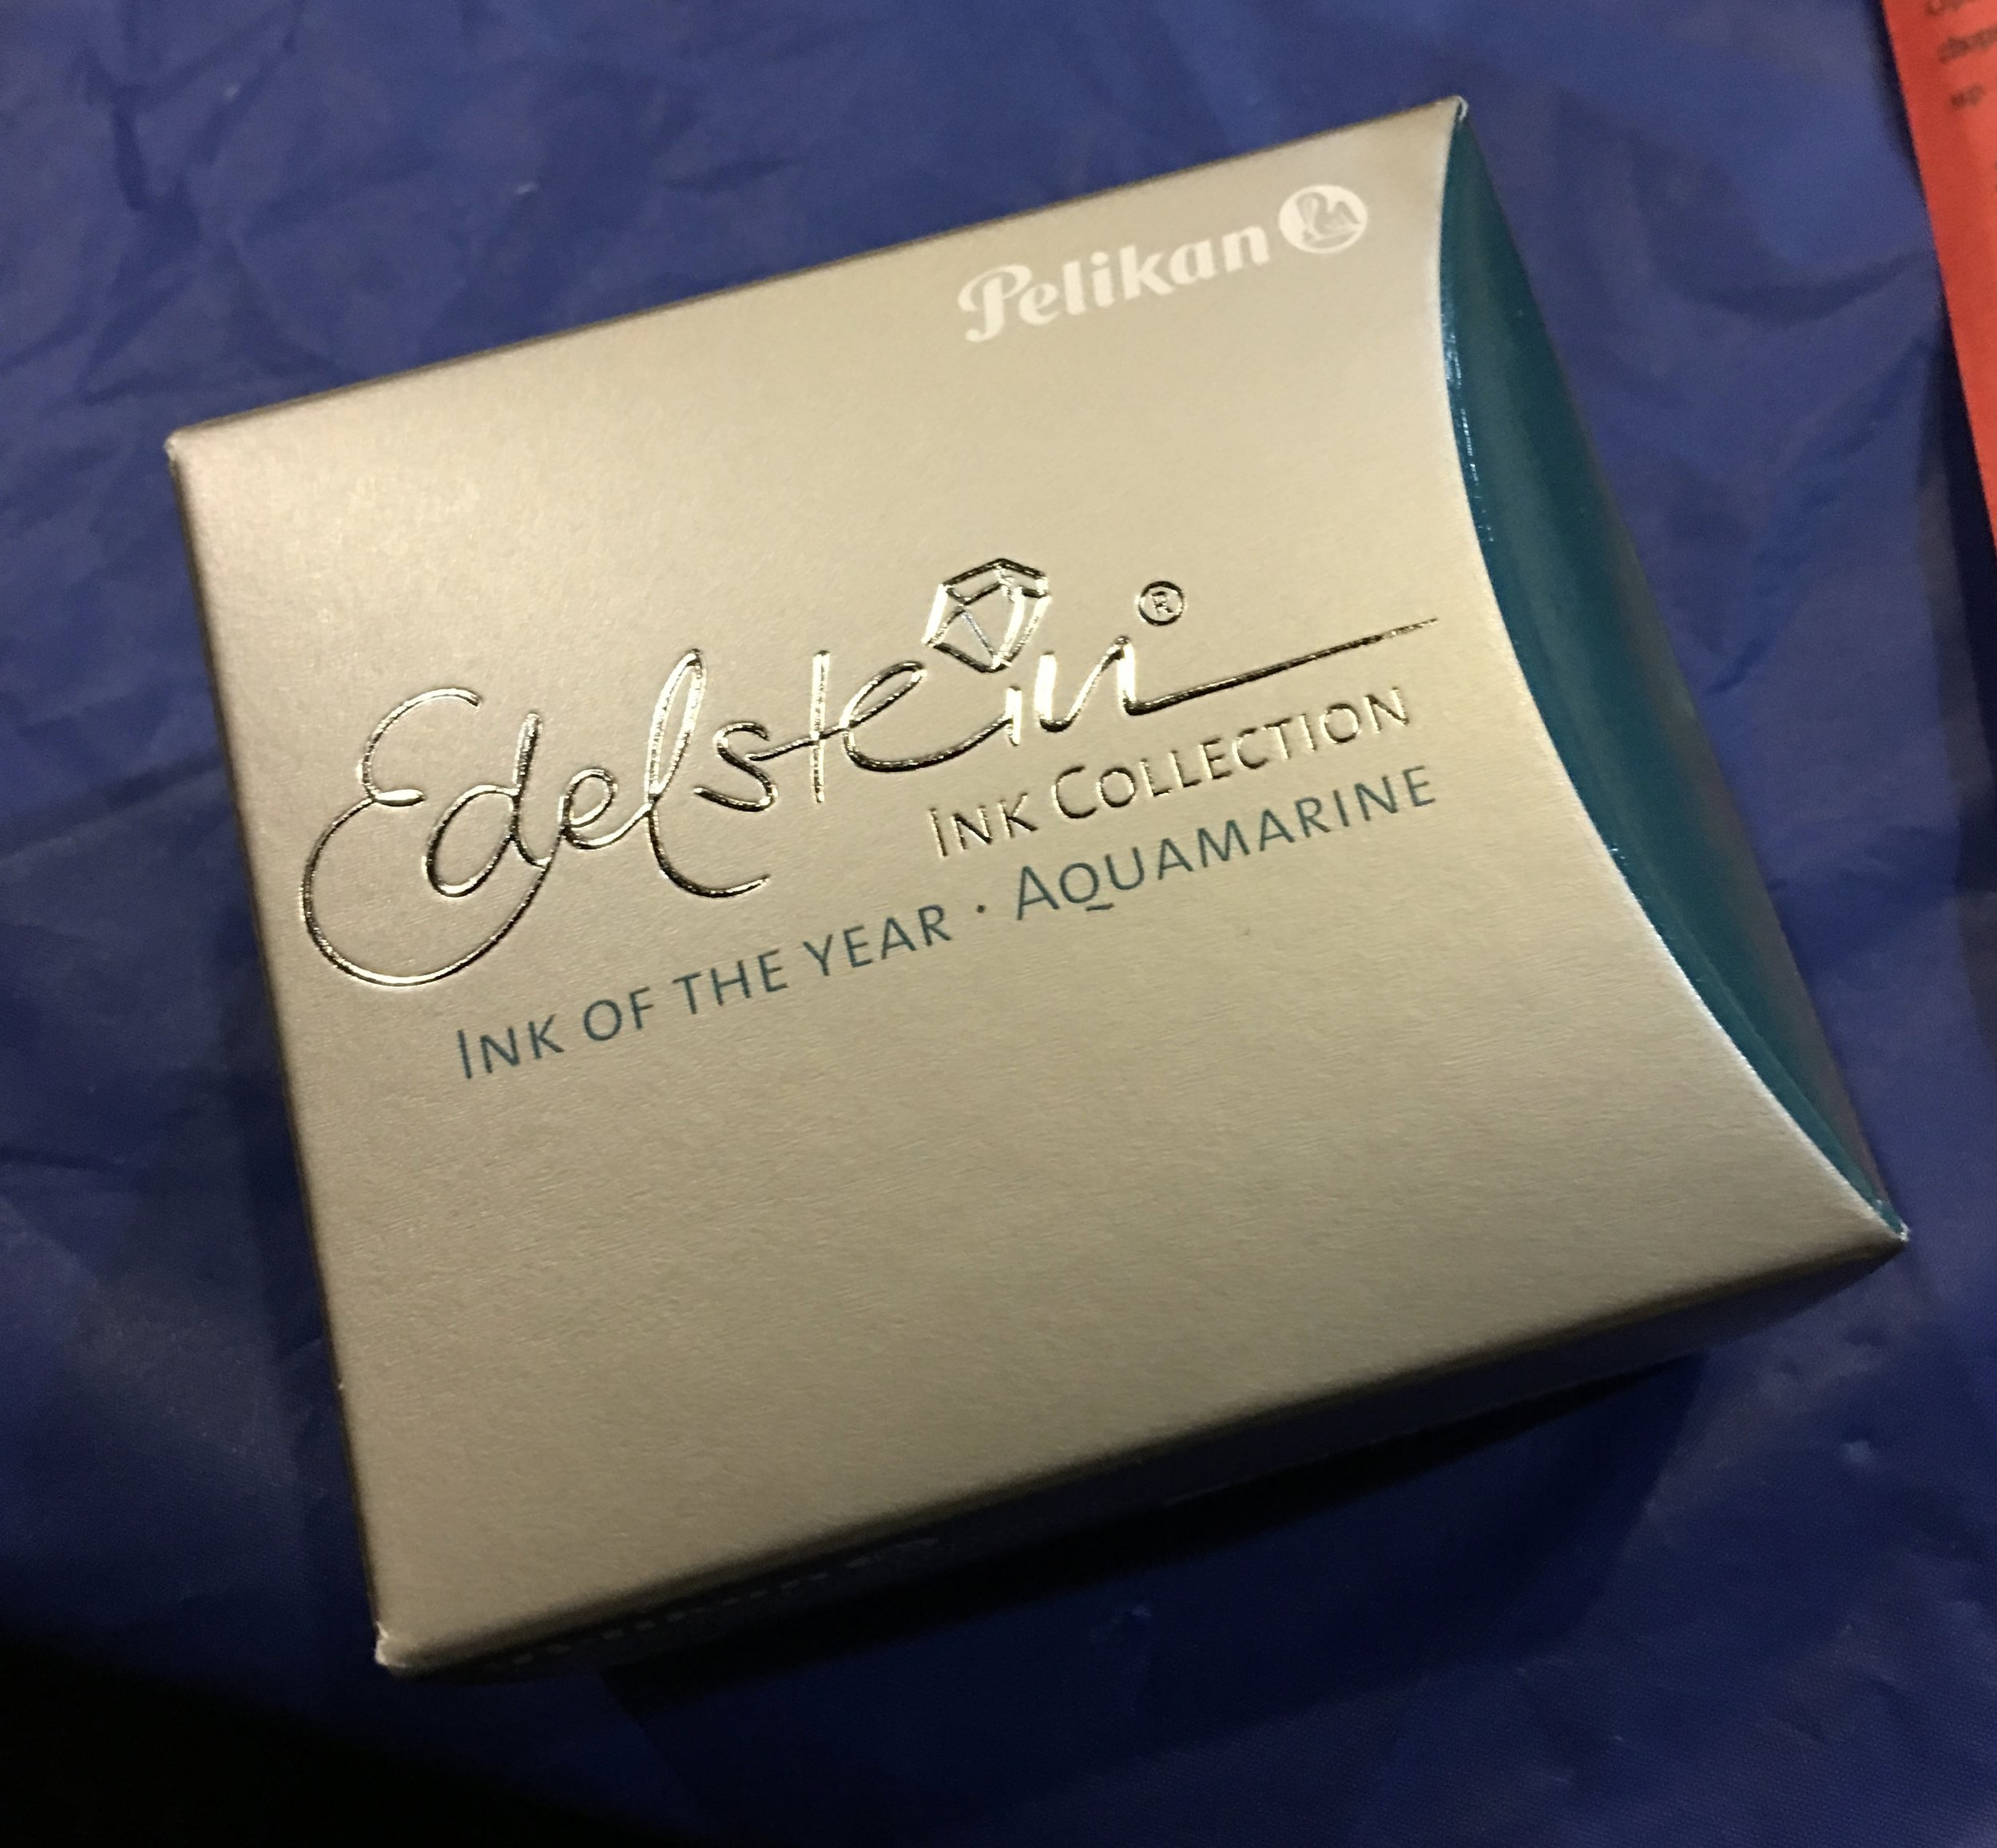 Pelikan party favors included a bottle of the 2016 Edelstein Ink of the Year, Aquamarine!